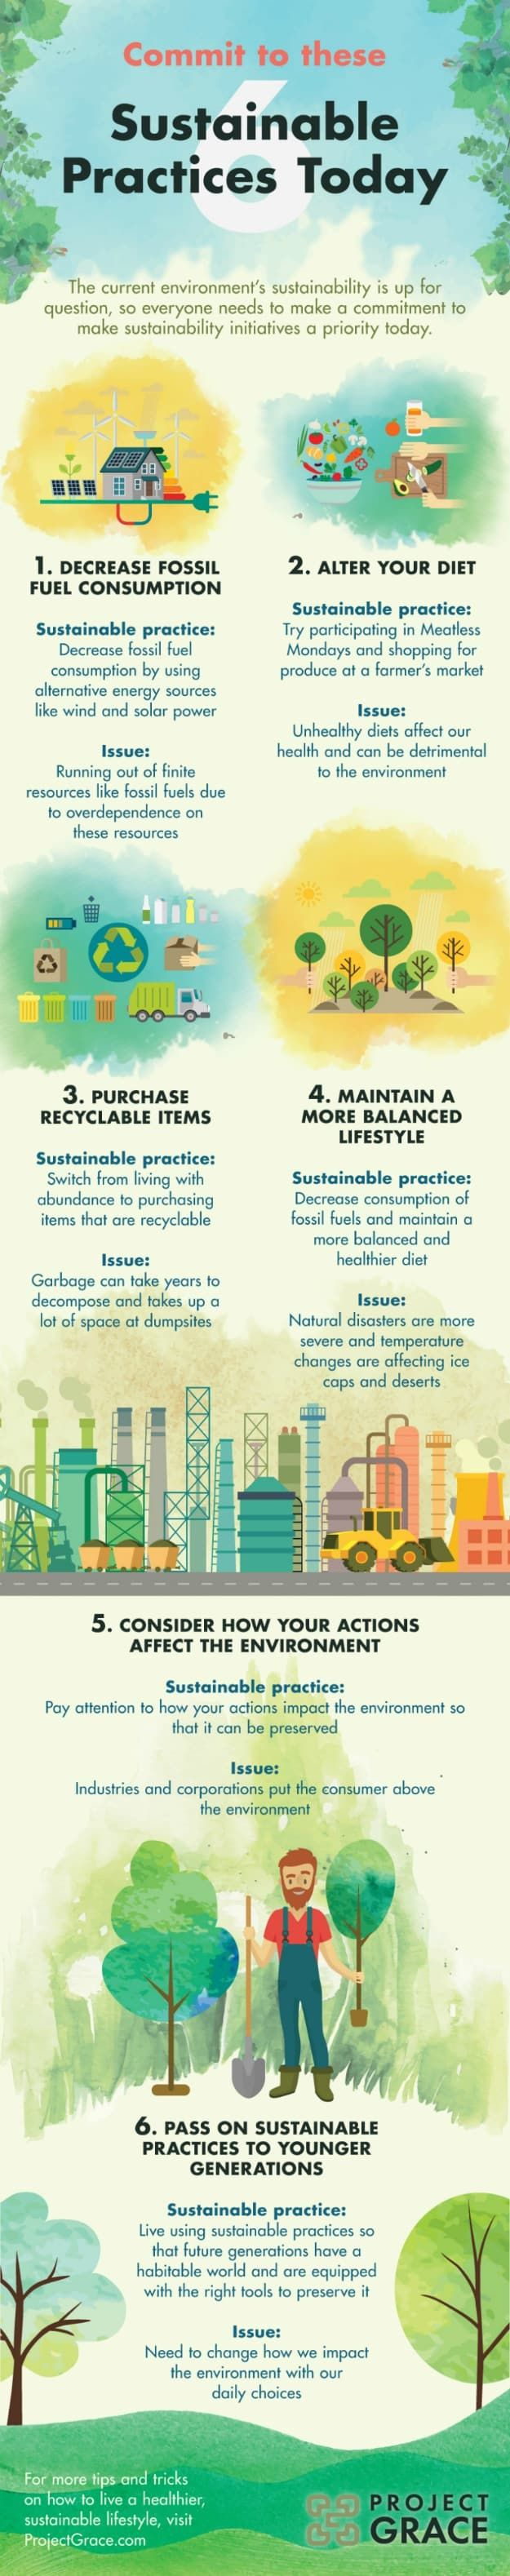 We've made an infographic that will help you commit to 6 sustainable practices with the objective of preserving Mother Nature for future generations.